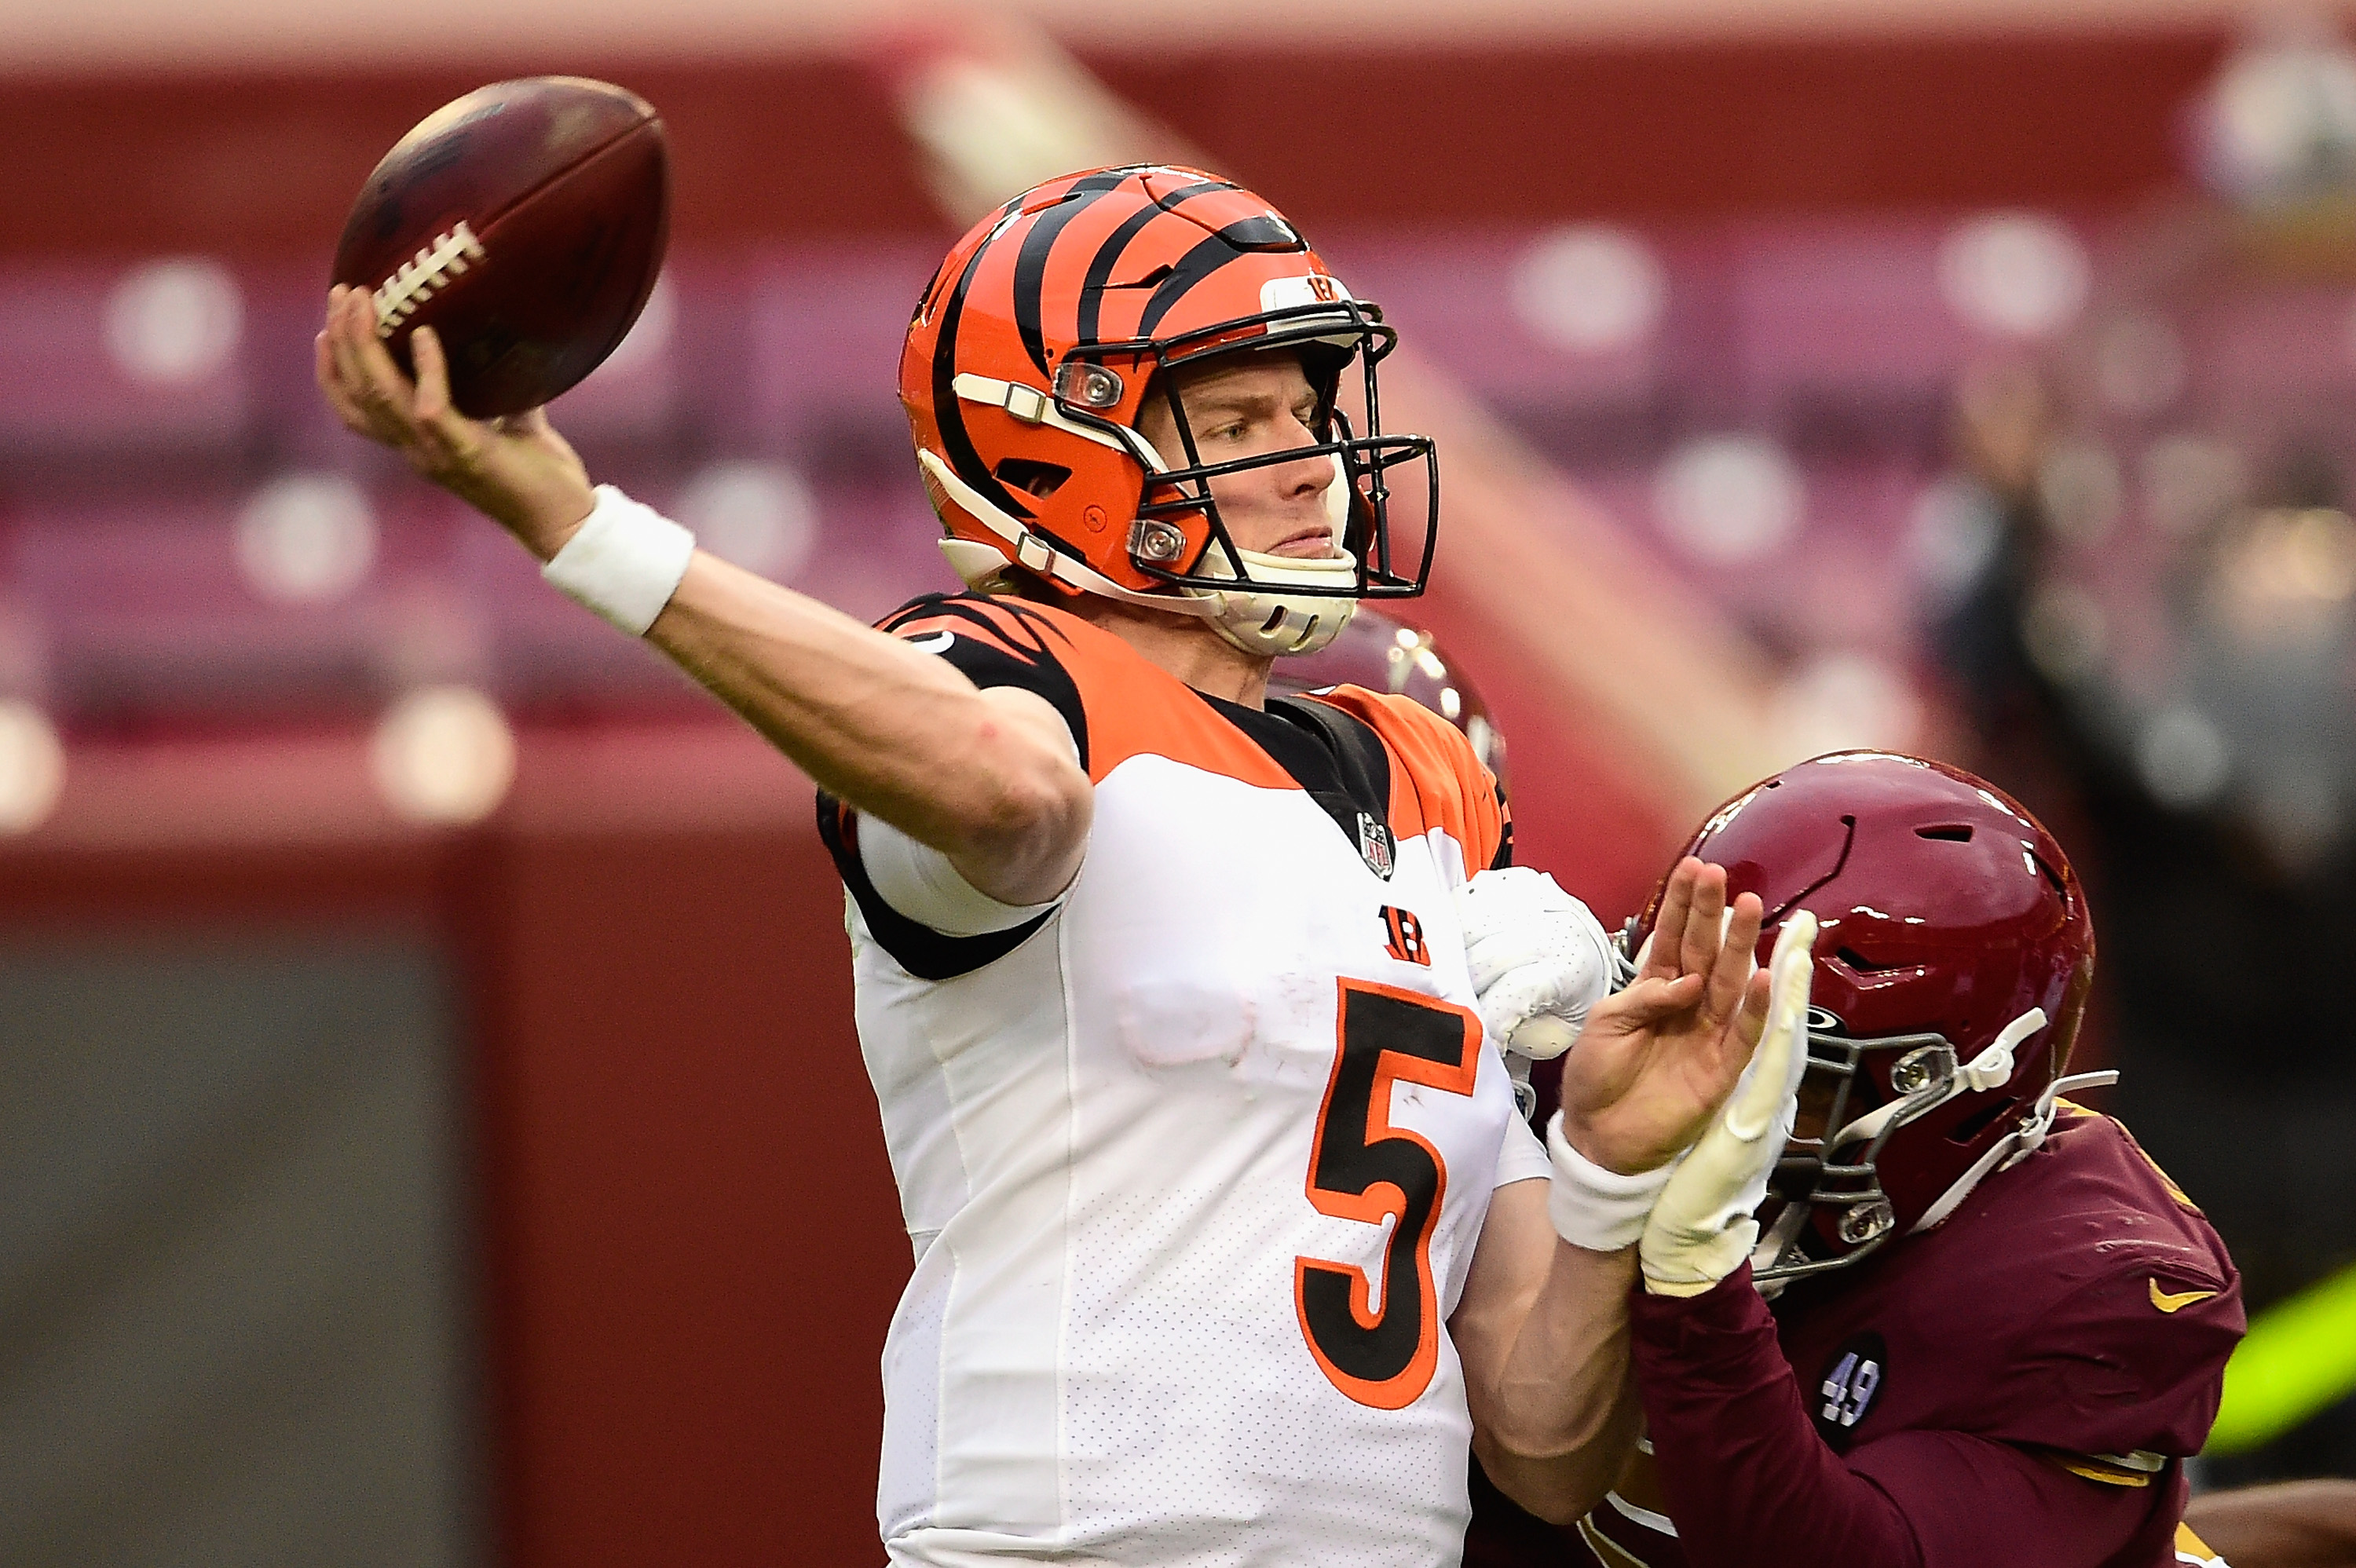 Cincinnati Bengals quarterback Joe Burrow's season is over after 10 games. Here's everything that you need to know about Ryan Finley, Burrow's replacement.